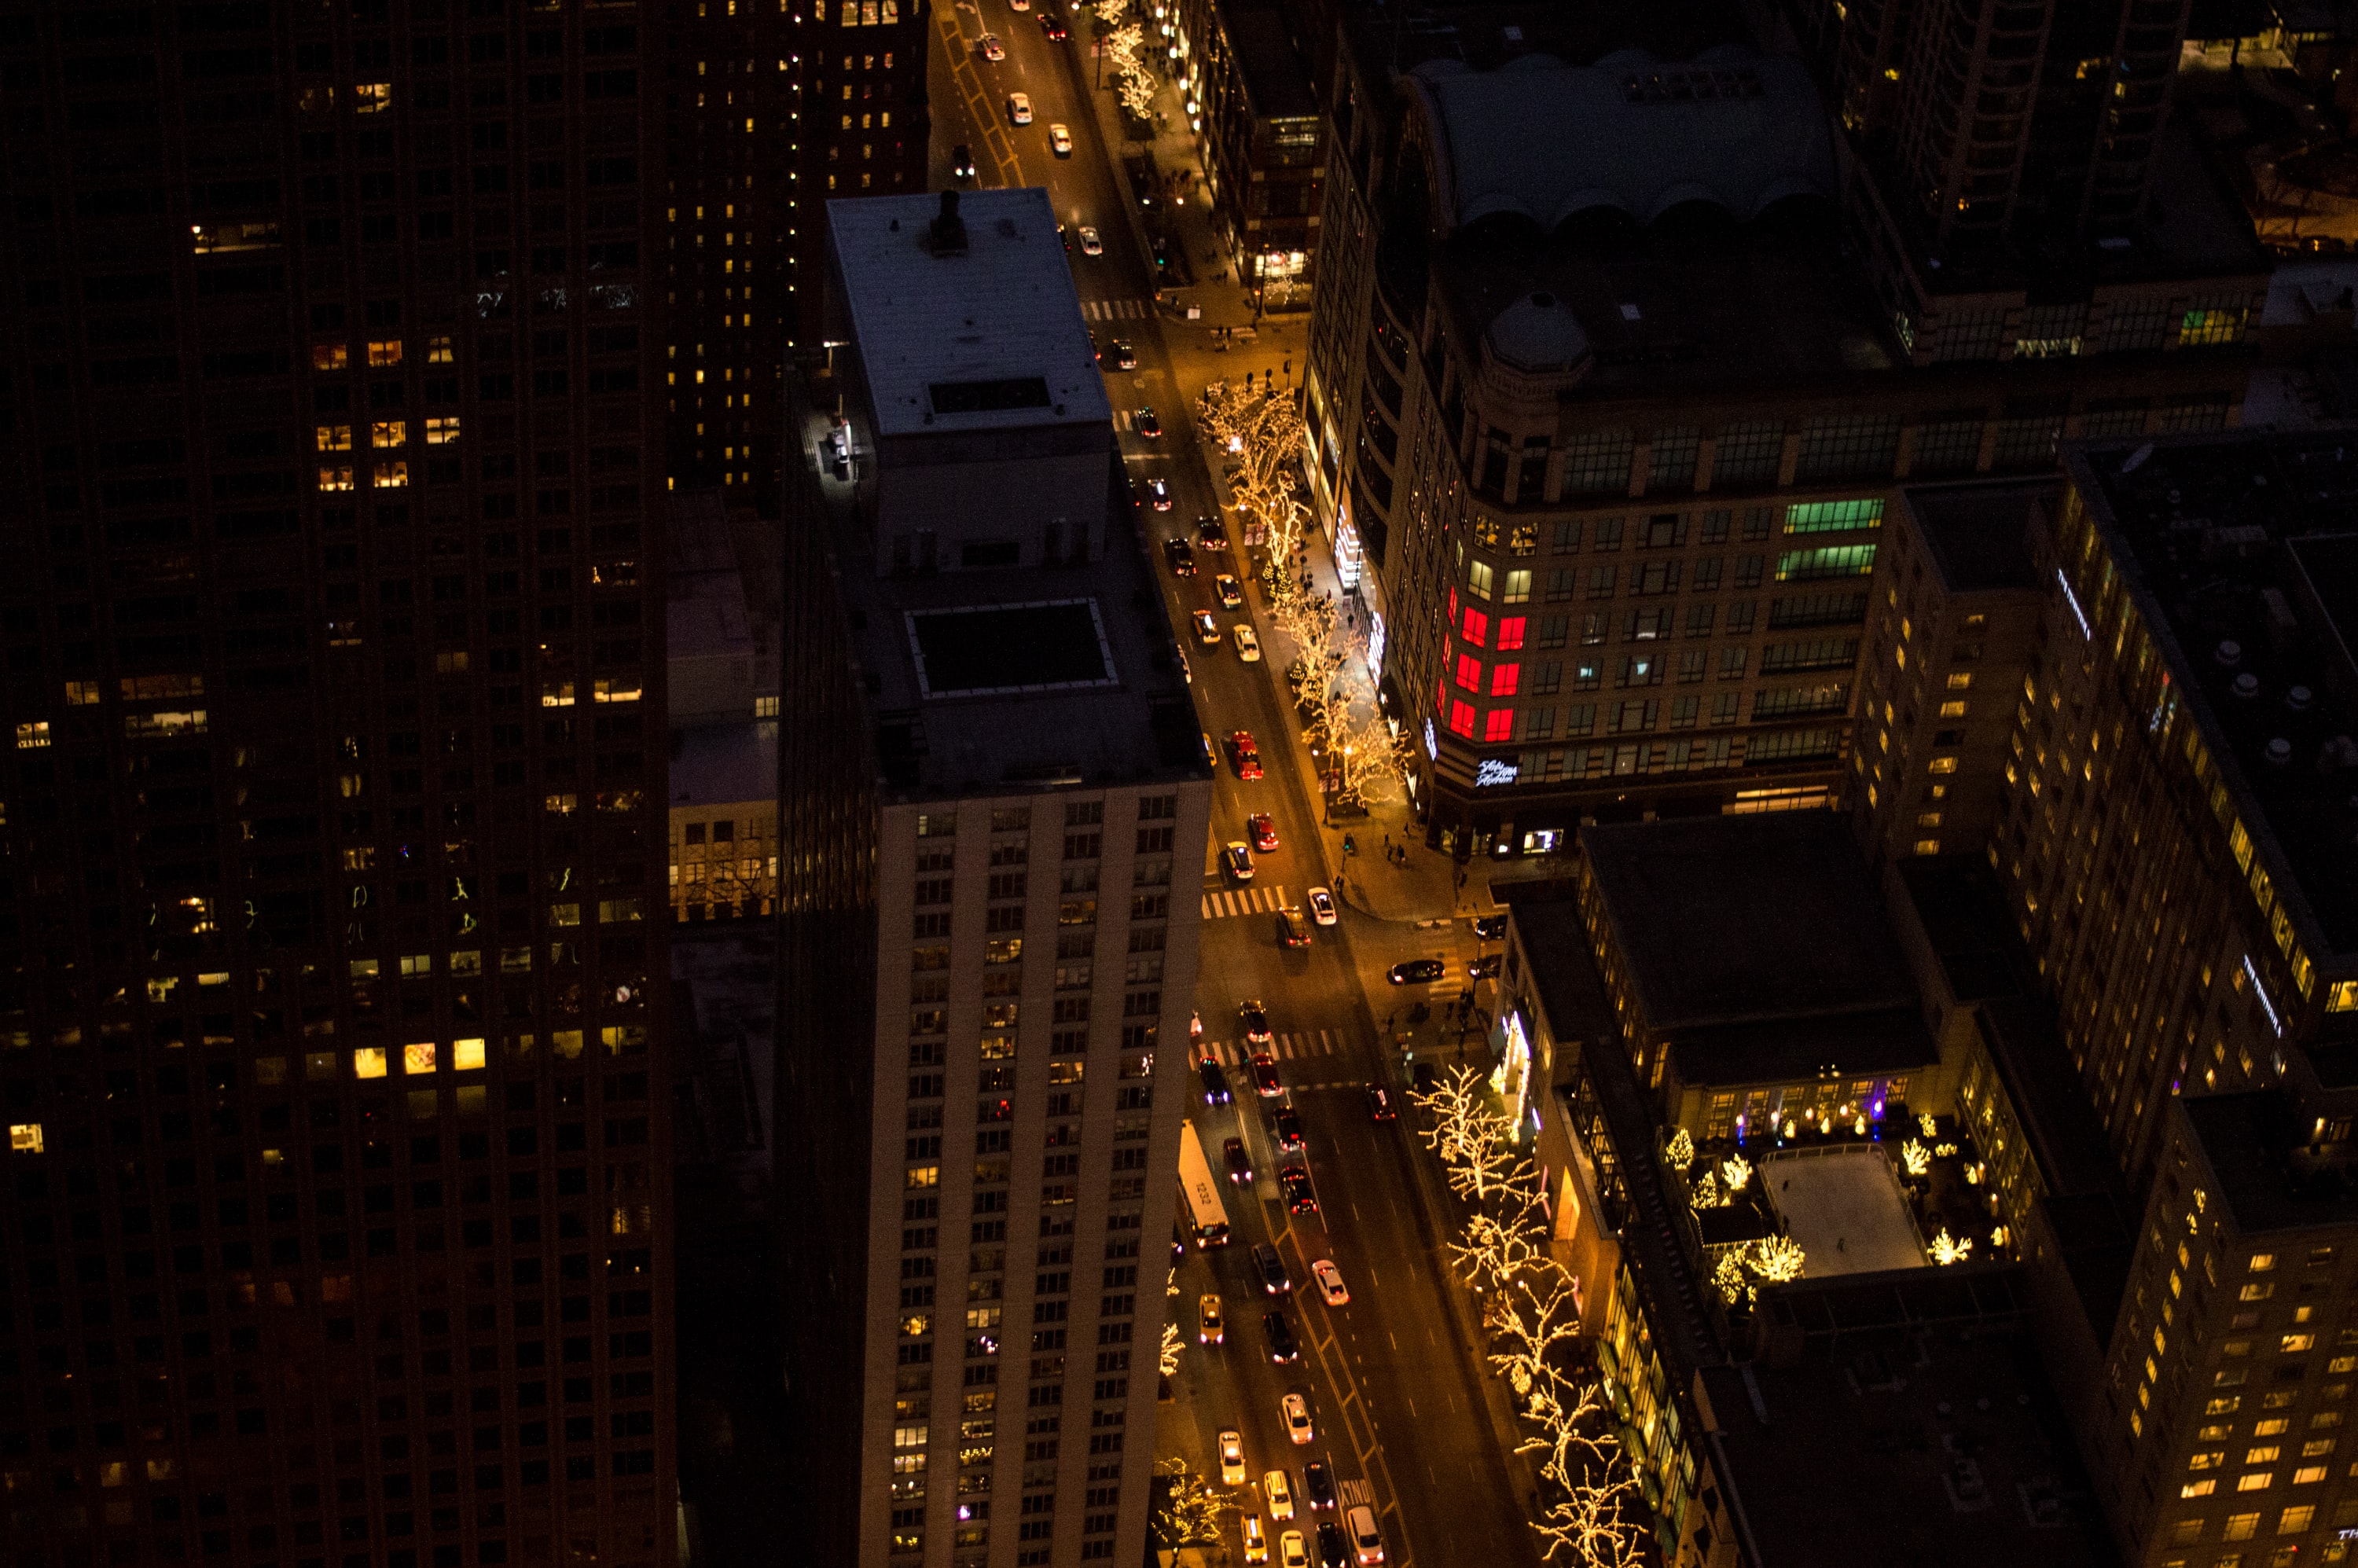 Aerial drone shot of busy city lit up at night